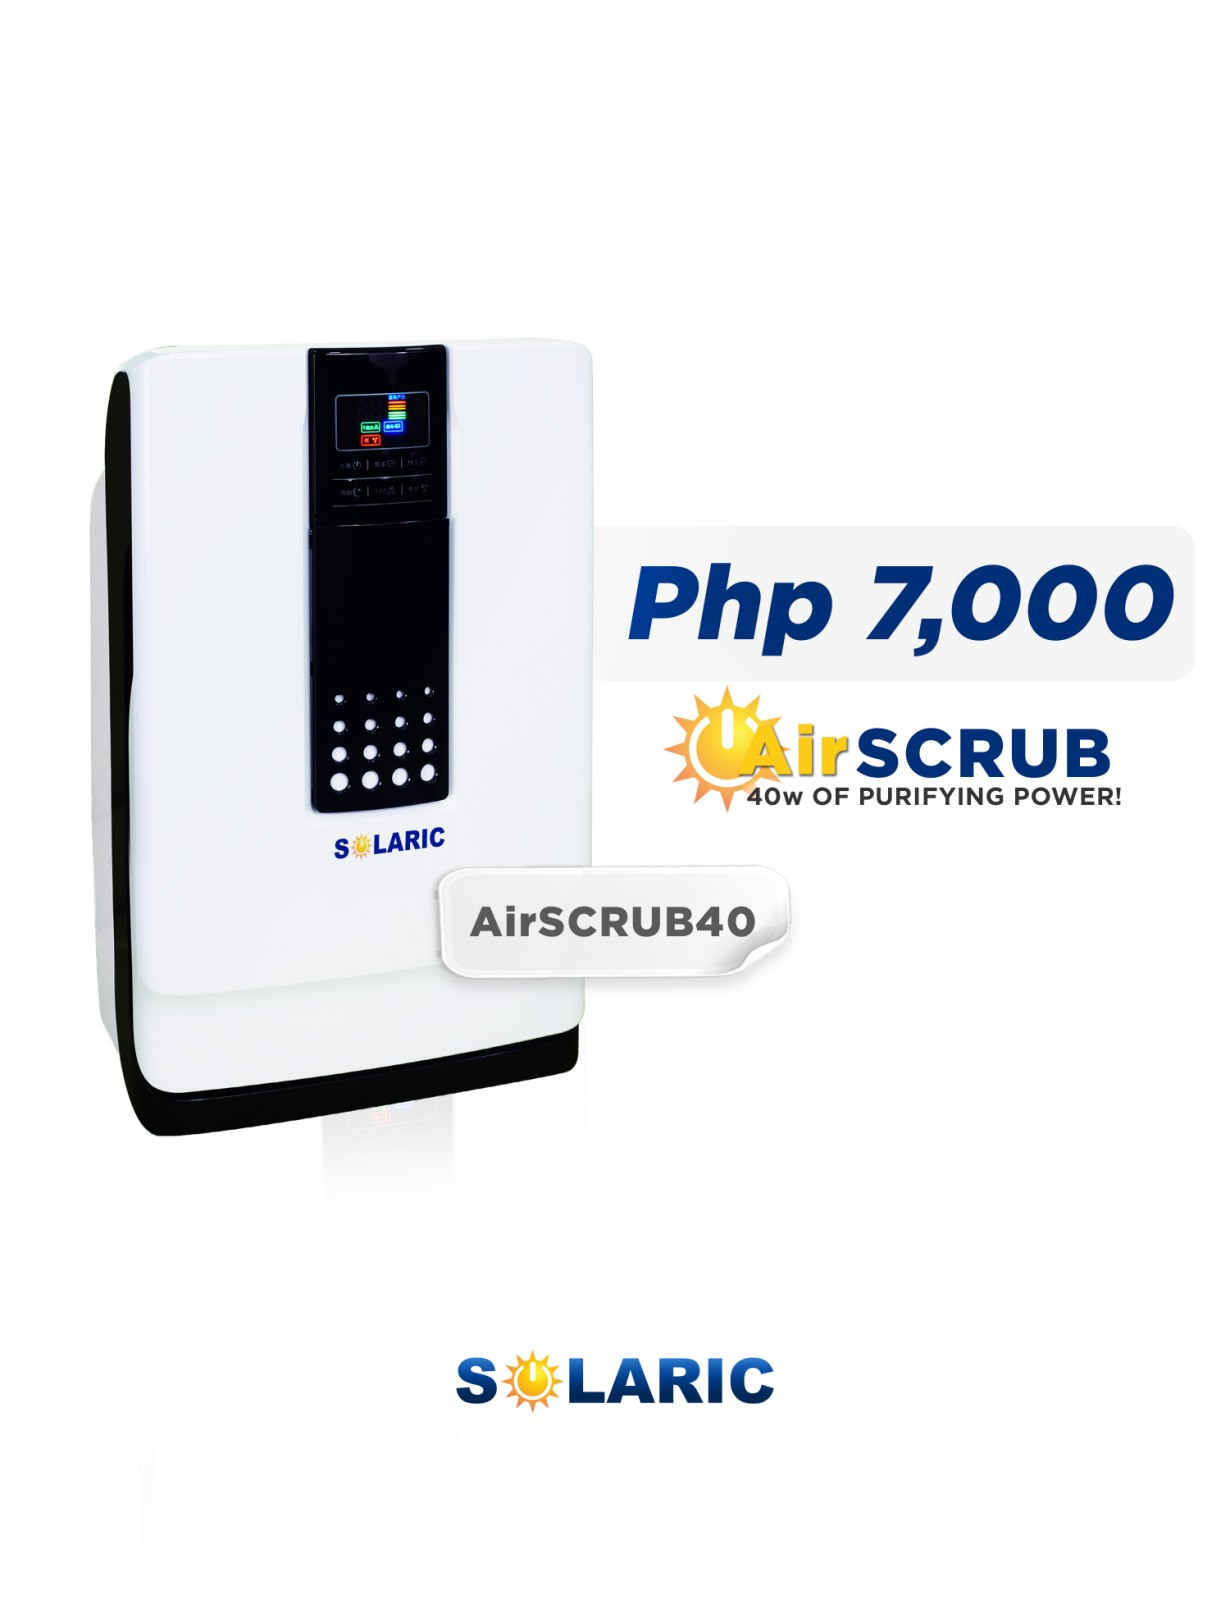 The mighty AirScrub40 is here in the Philippines